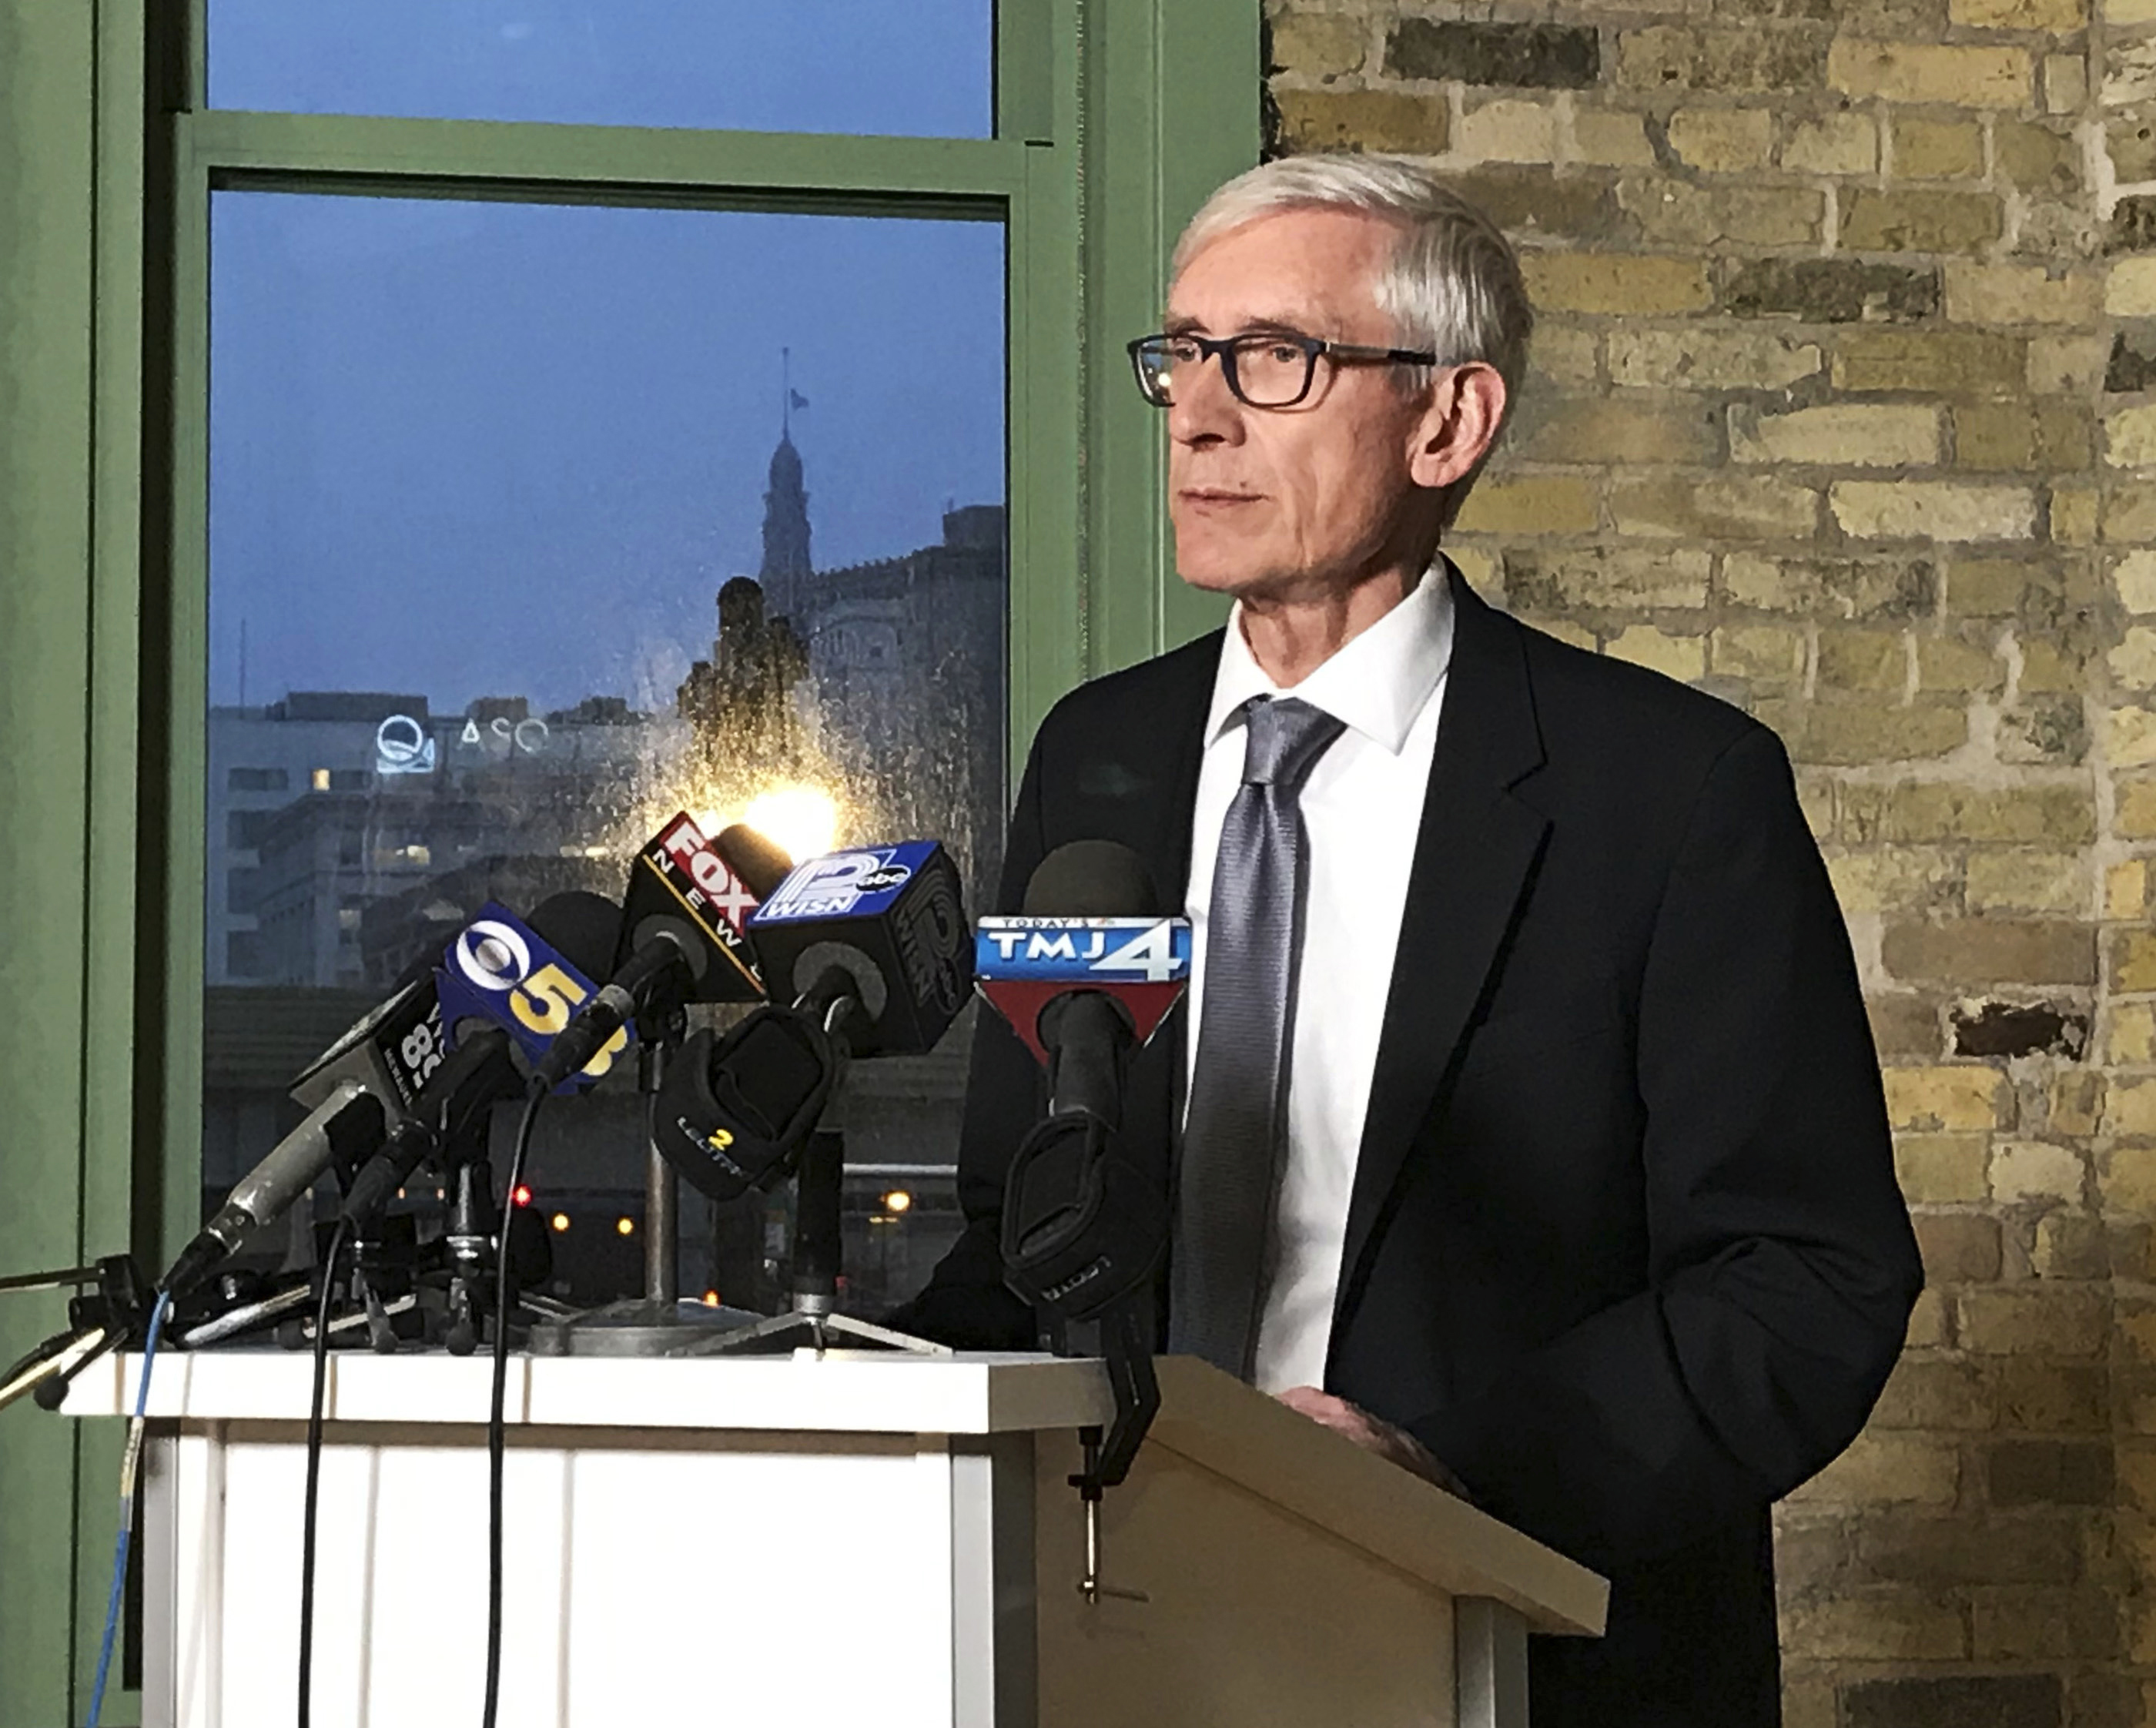 Wisconsin Gov.-elect Tony Evers speaks at the Ward 4 building in Milwaukee on Sunday, Dec. 2, 2018. Democrats in Wisconsin girded for a fight and encouraged voters to speak out as Republicans prepared to move ahead quickly this week with a highly unusual and sweeping lame-duck session to pass a series of proposals that would weaken both Democratic Gov.-elect Evers and Attorney General-elect Josh Kaul. (Meg Jones/Milwaukee Journal-Sentinel via AP)